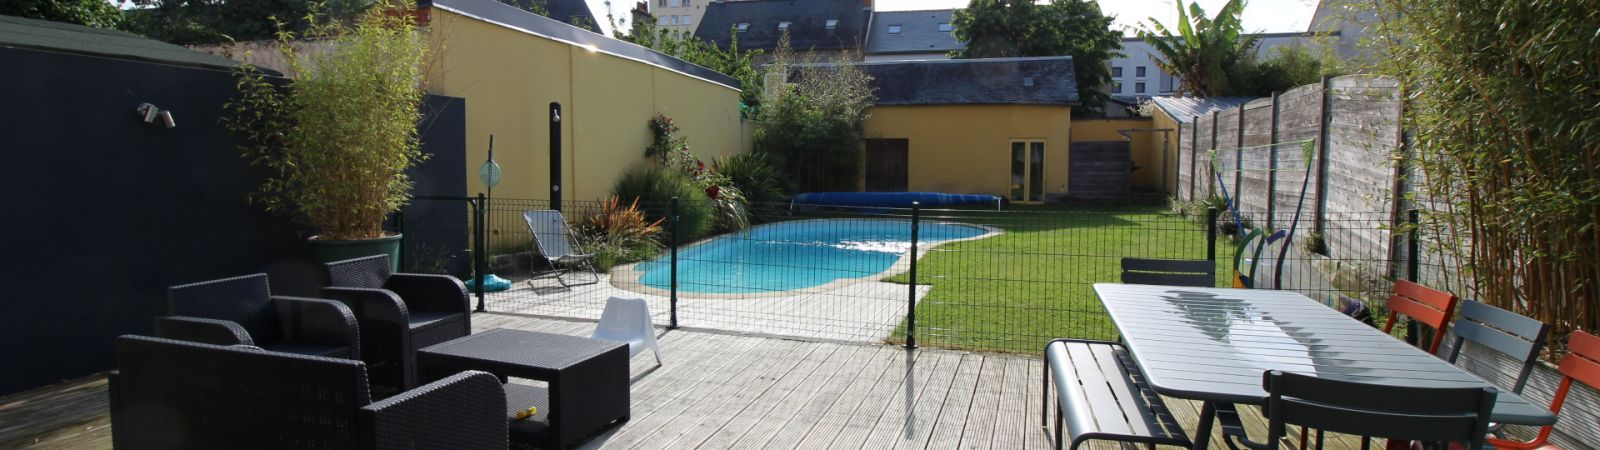 photo 7: Superbe Maison Contemporaine avec piscine